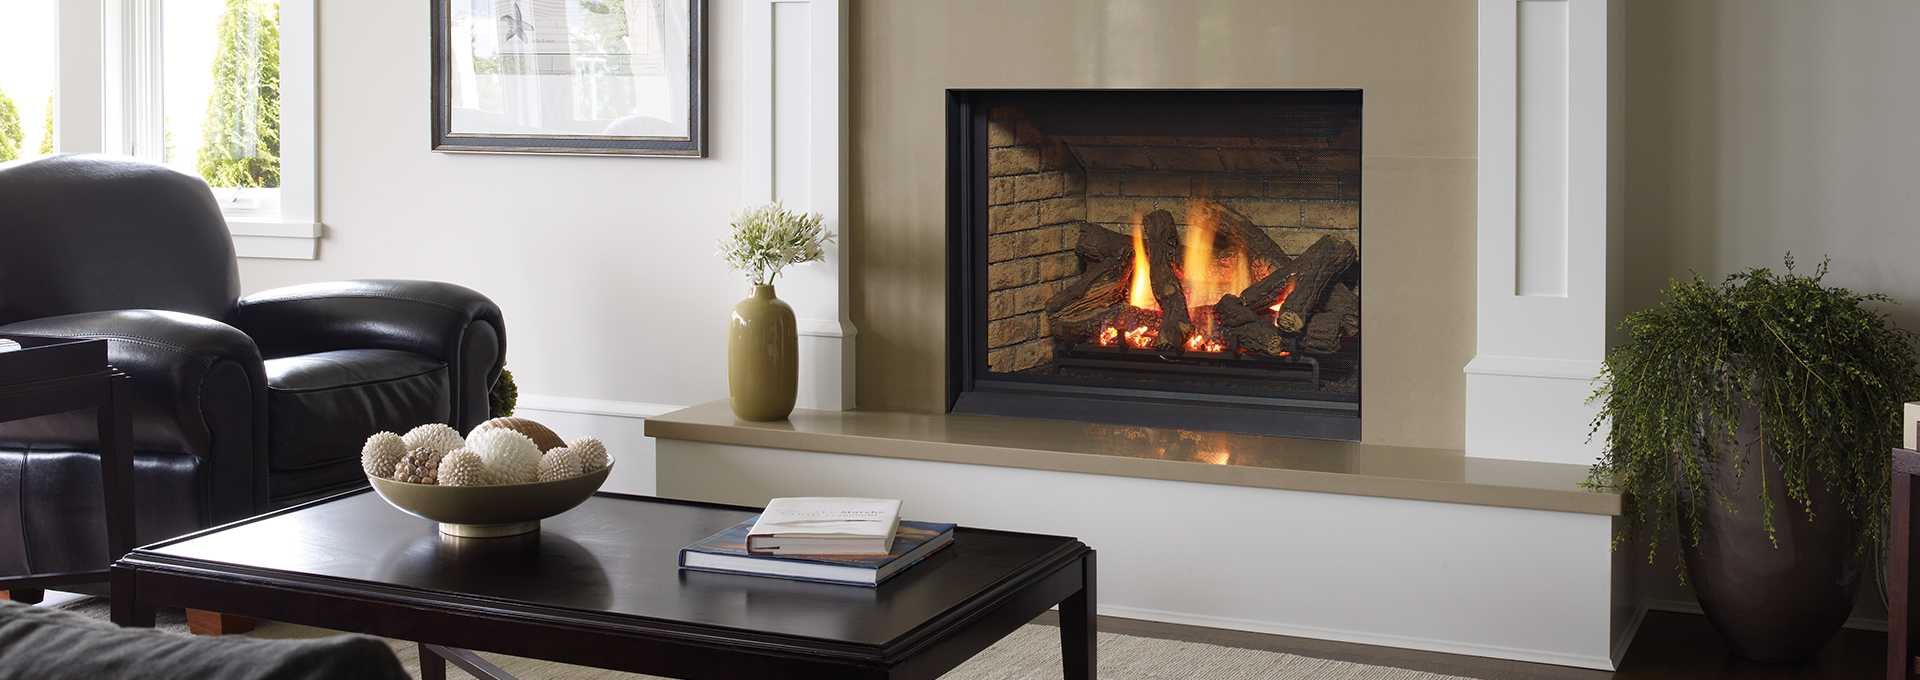 Direct Vent Gas Fireplace Ratings Traditional Gas Fireplaces Regency Fireplace Products